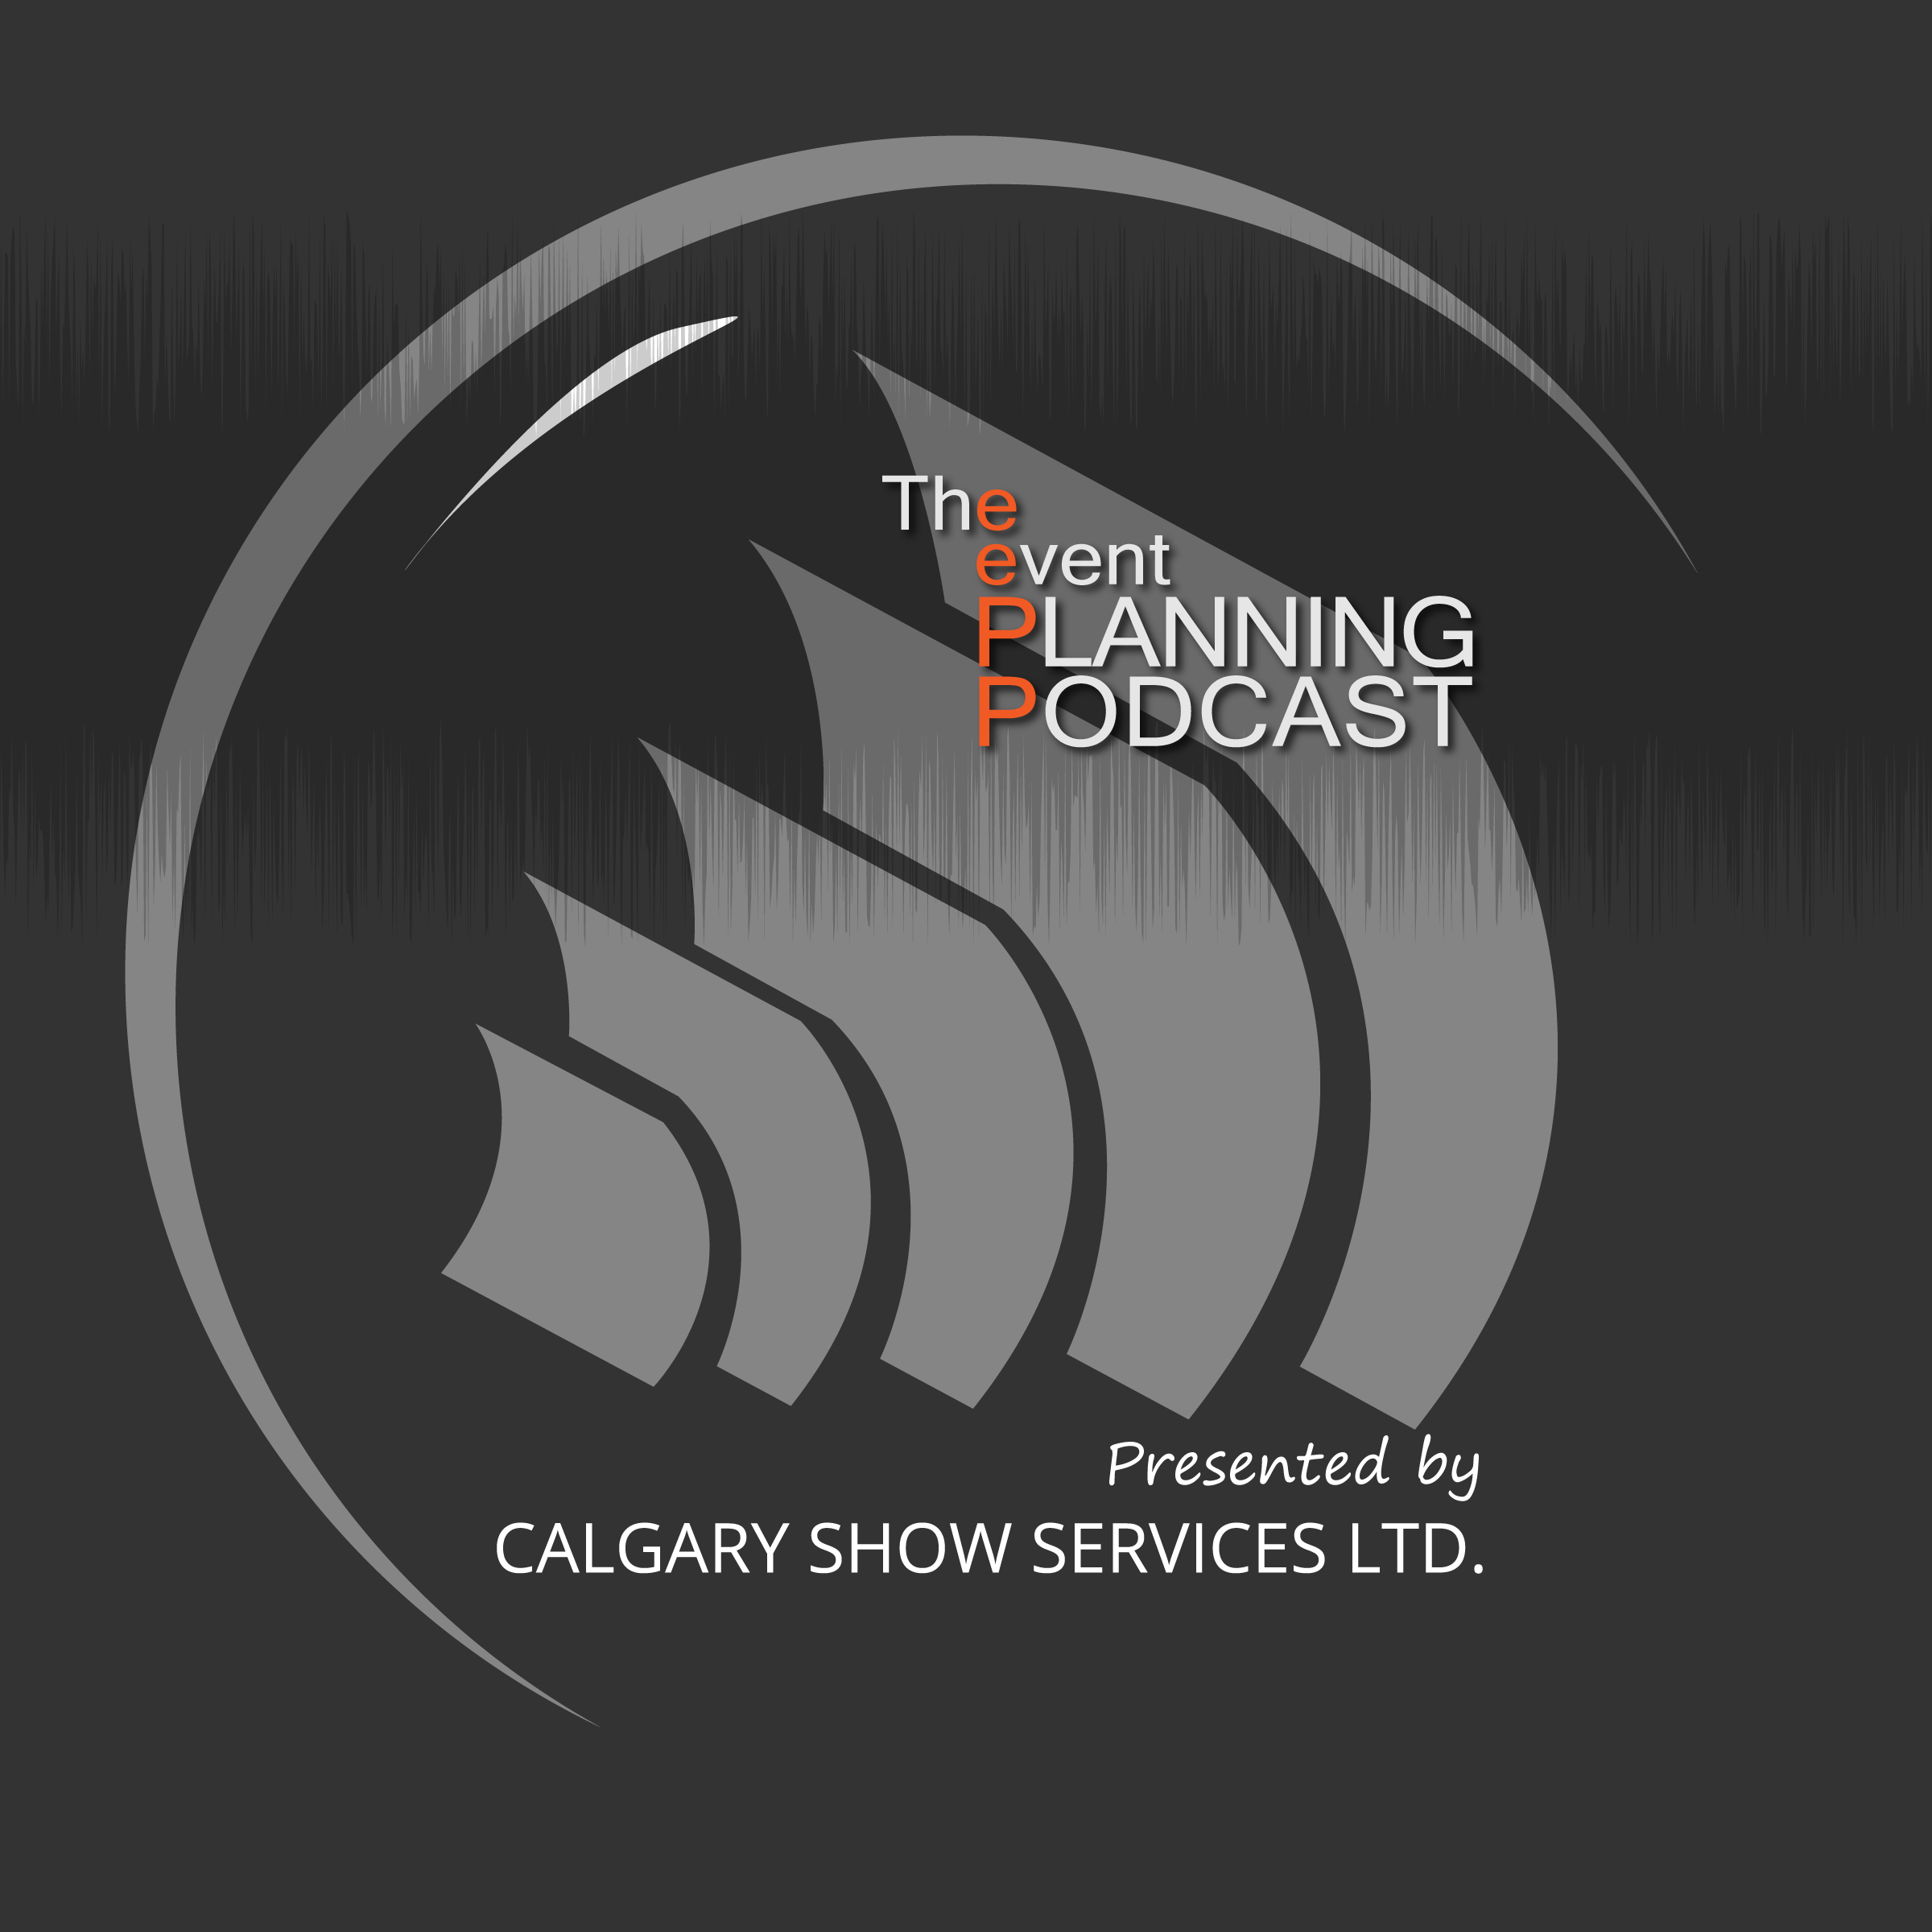 The Event Planning Podcast